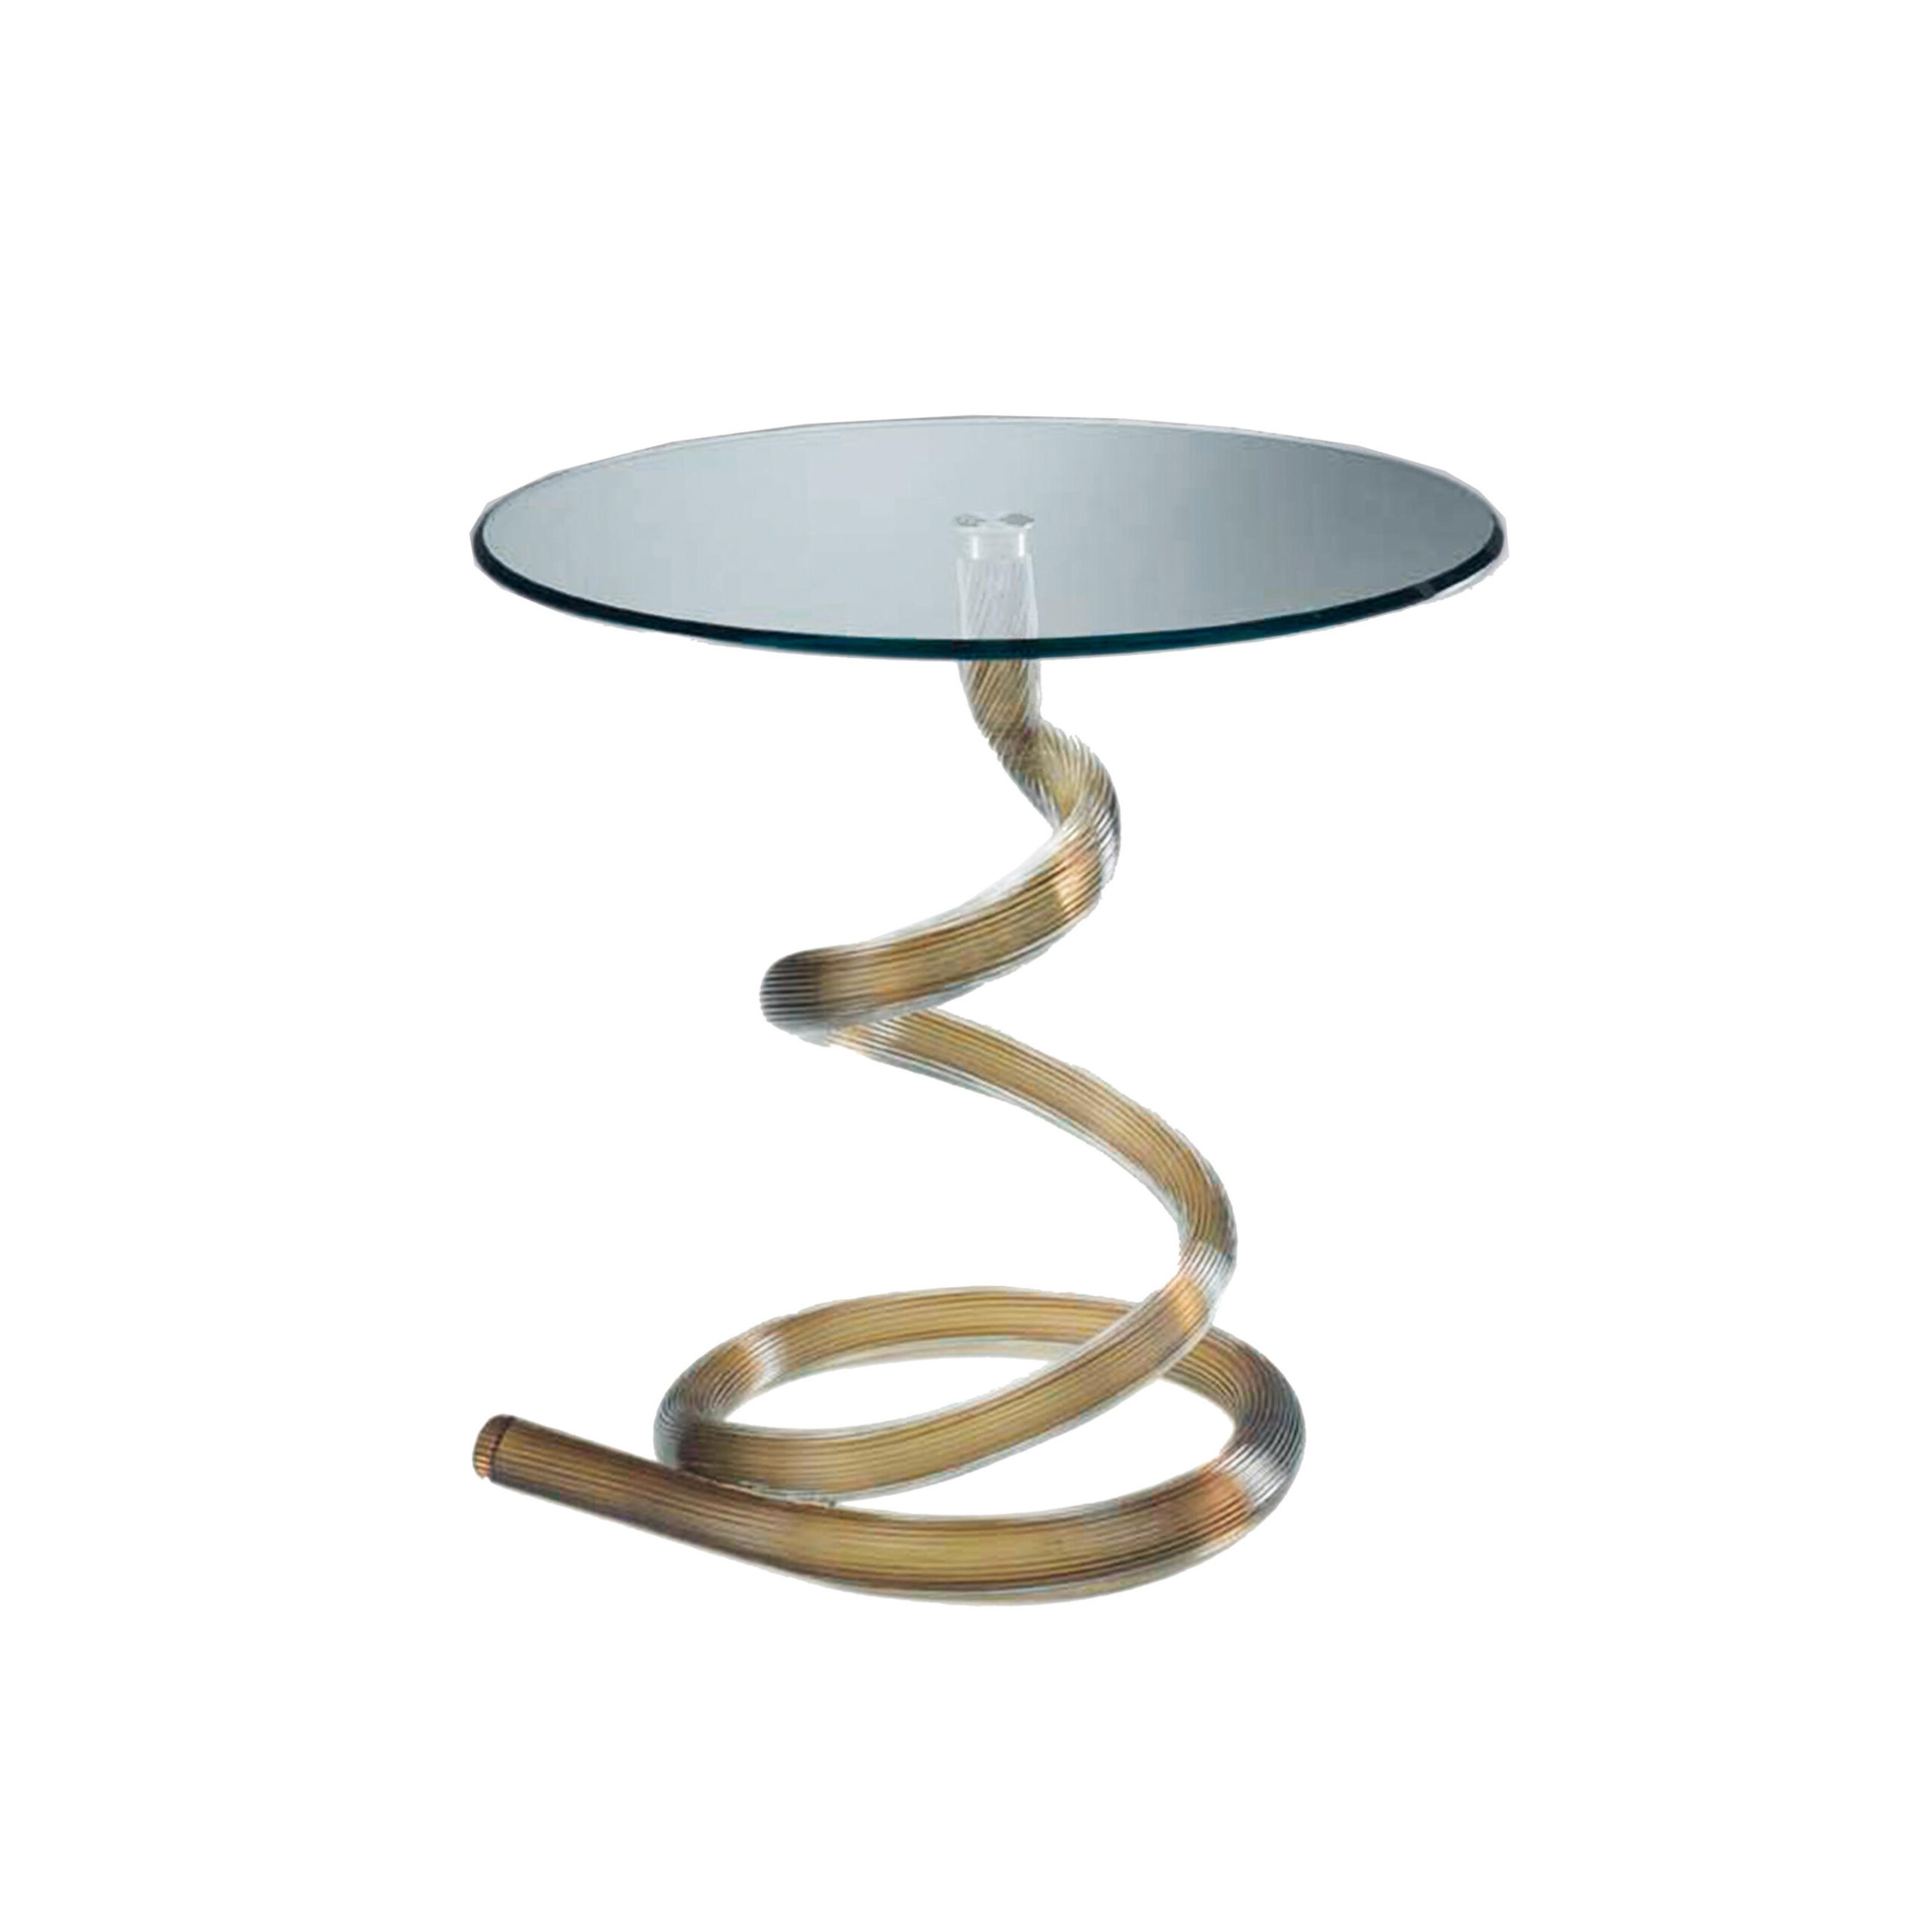 luxury furniture stores calgary end tables side tables ghibli end table ghibli side table reflex angelo luxuries of europe